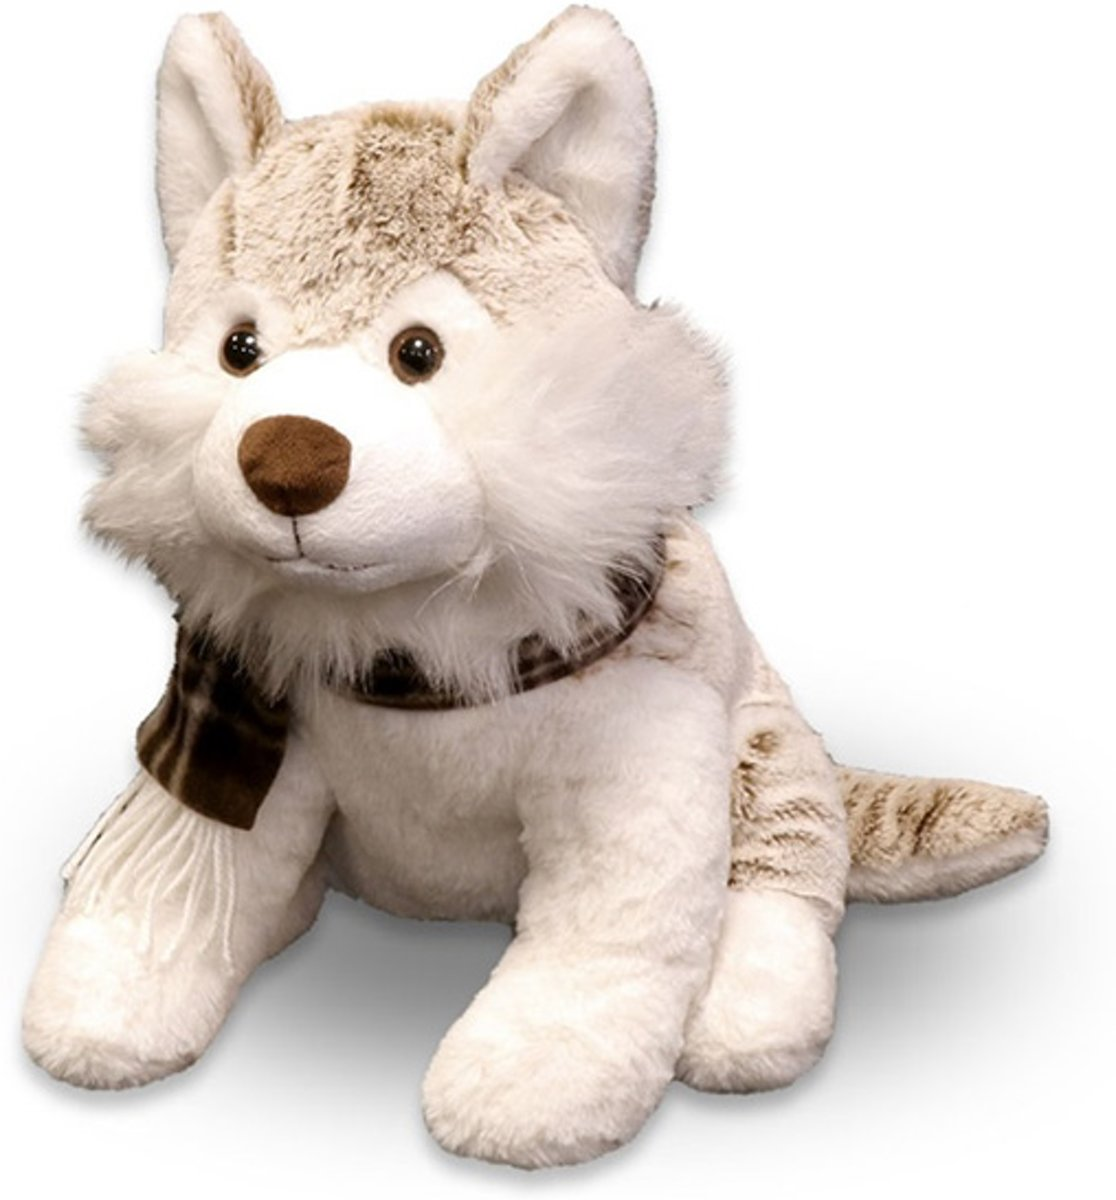 Unique Living Husky Plush - Knuffeldier - 32 cm - Bruin